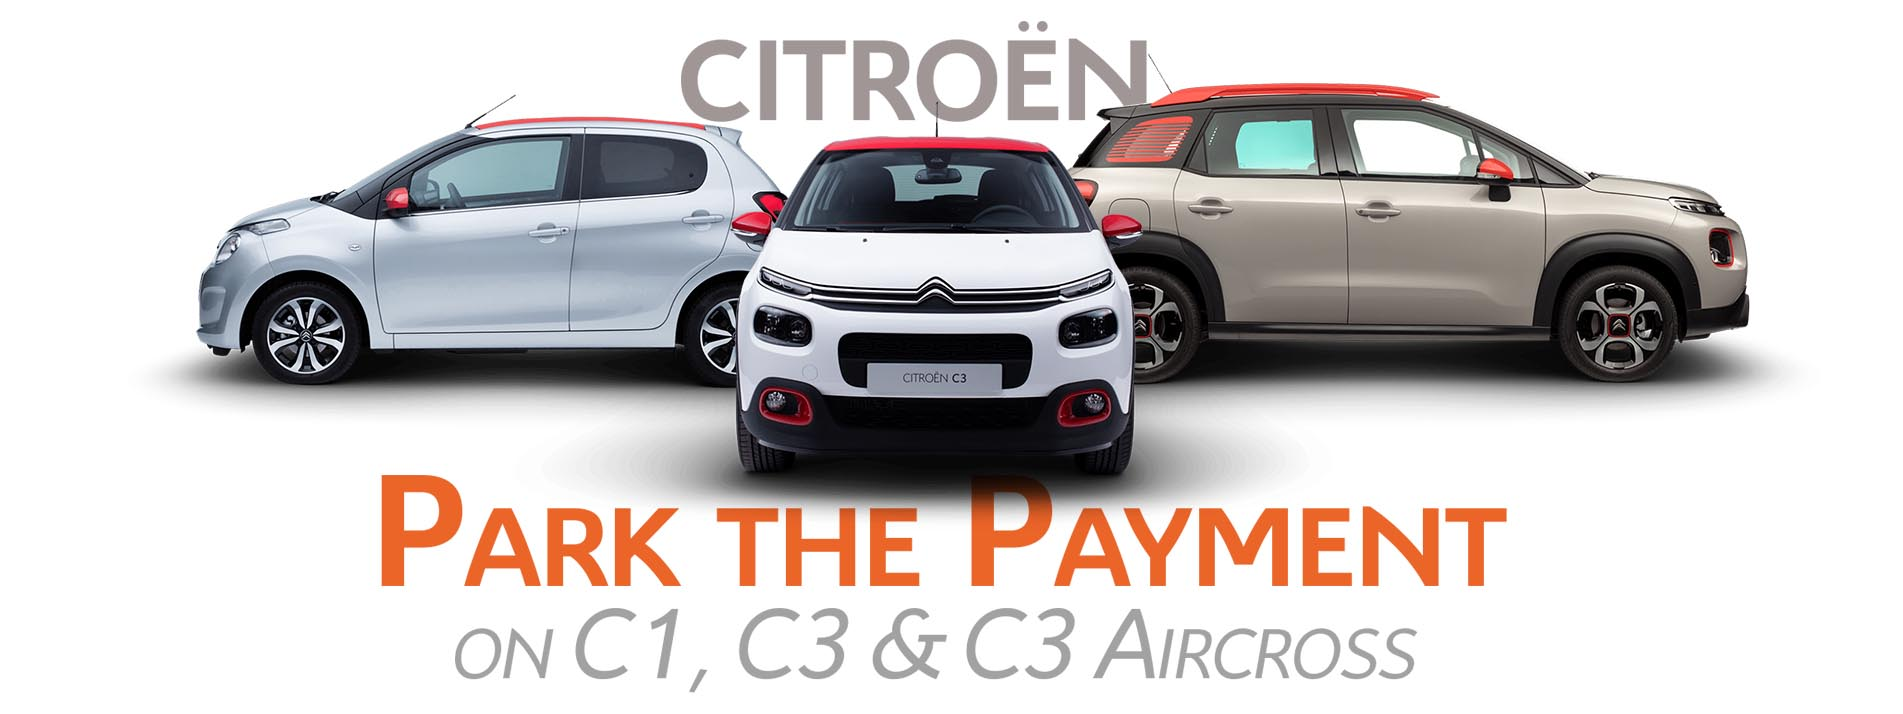 citroen-park-the-payments-3-month-car-finance-holiday-m-sli